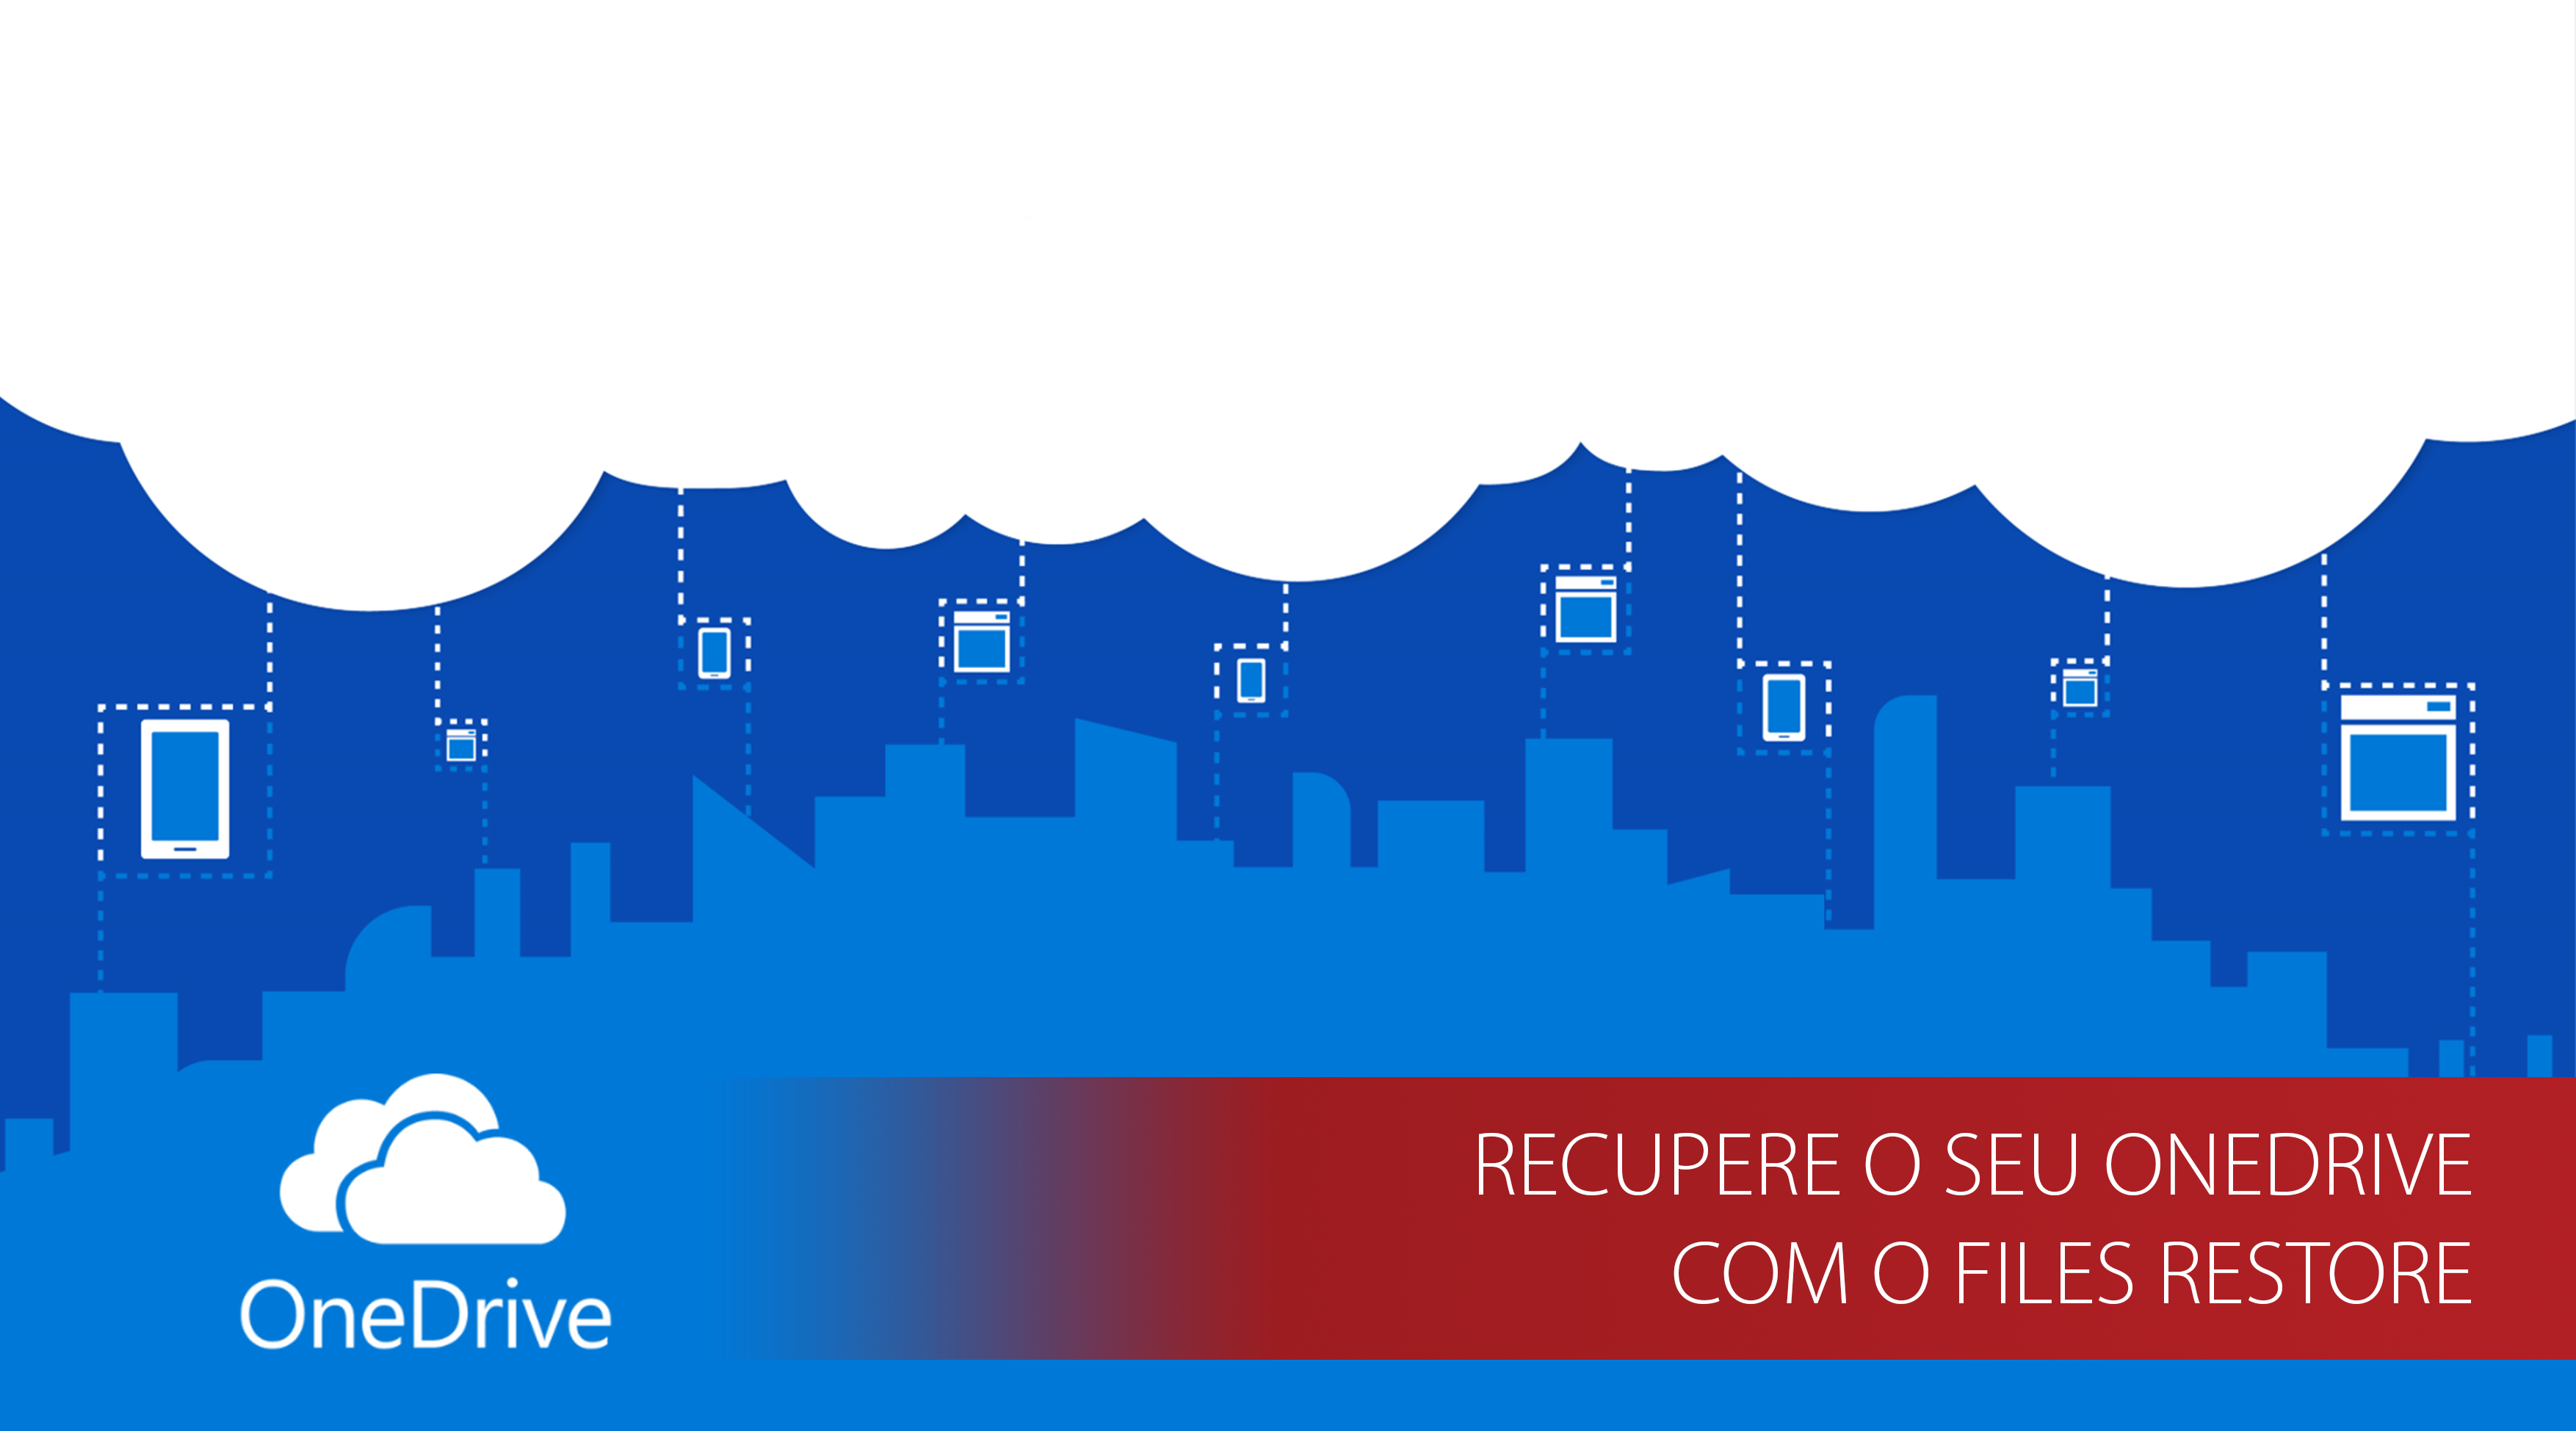 How TO: Recupere o seu Onedrive com o Files Restore